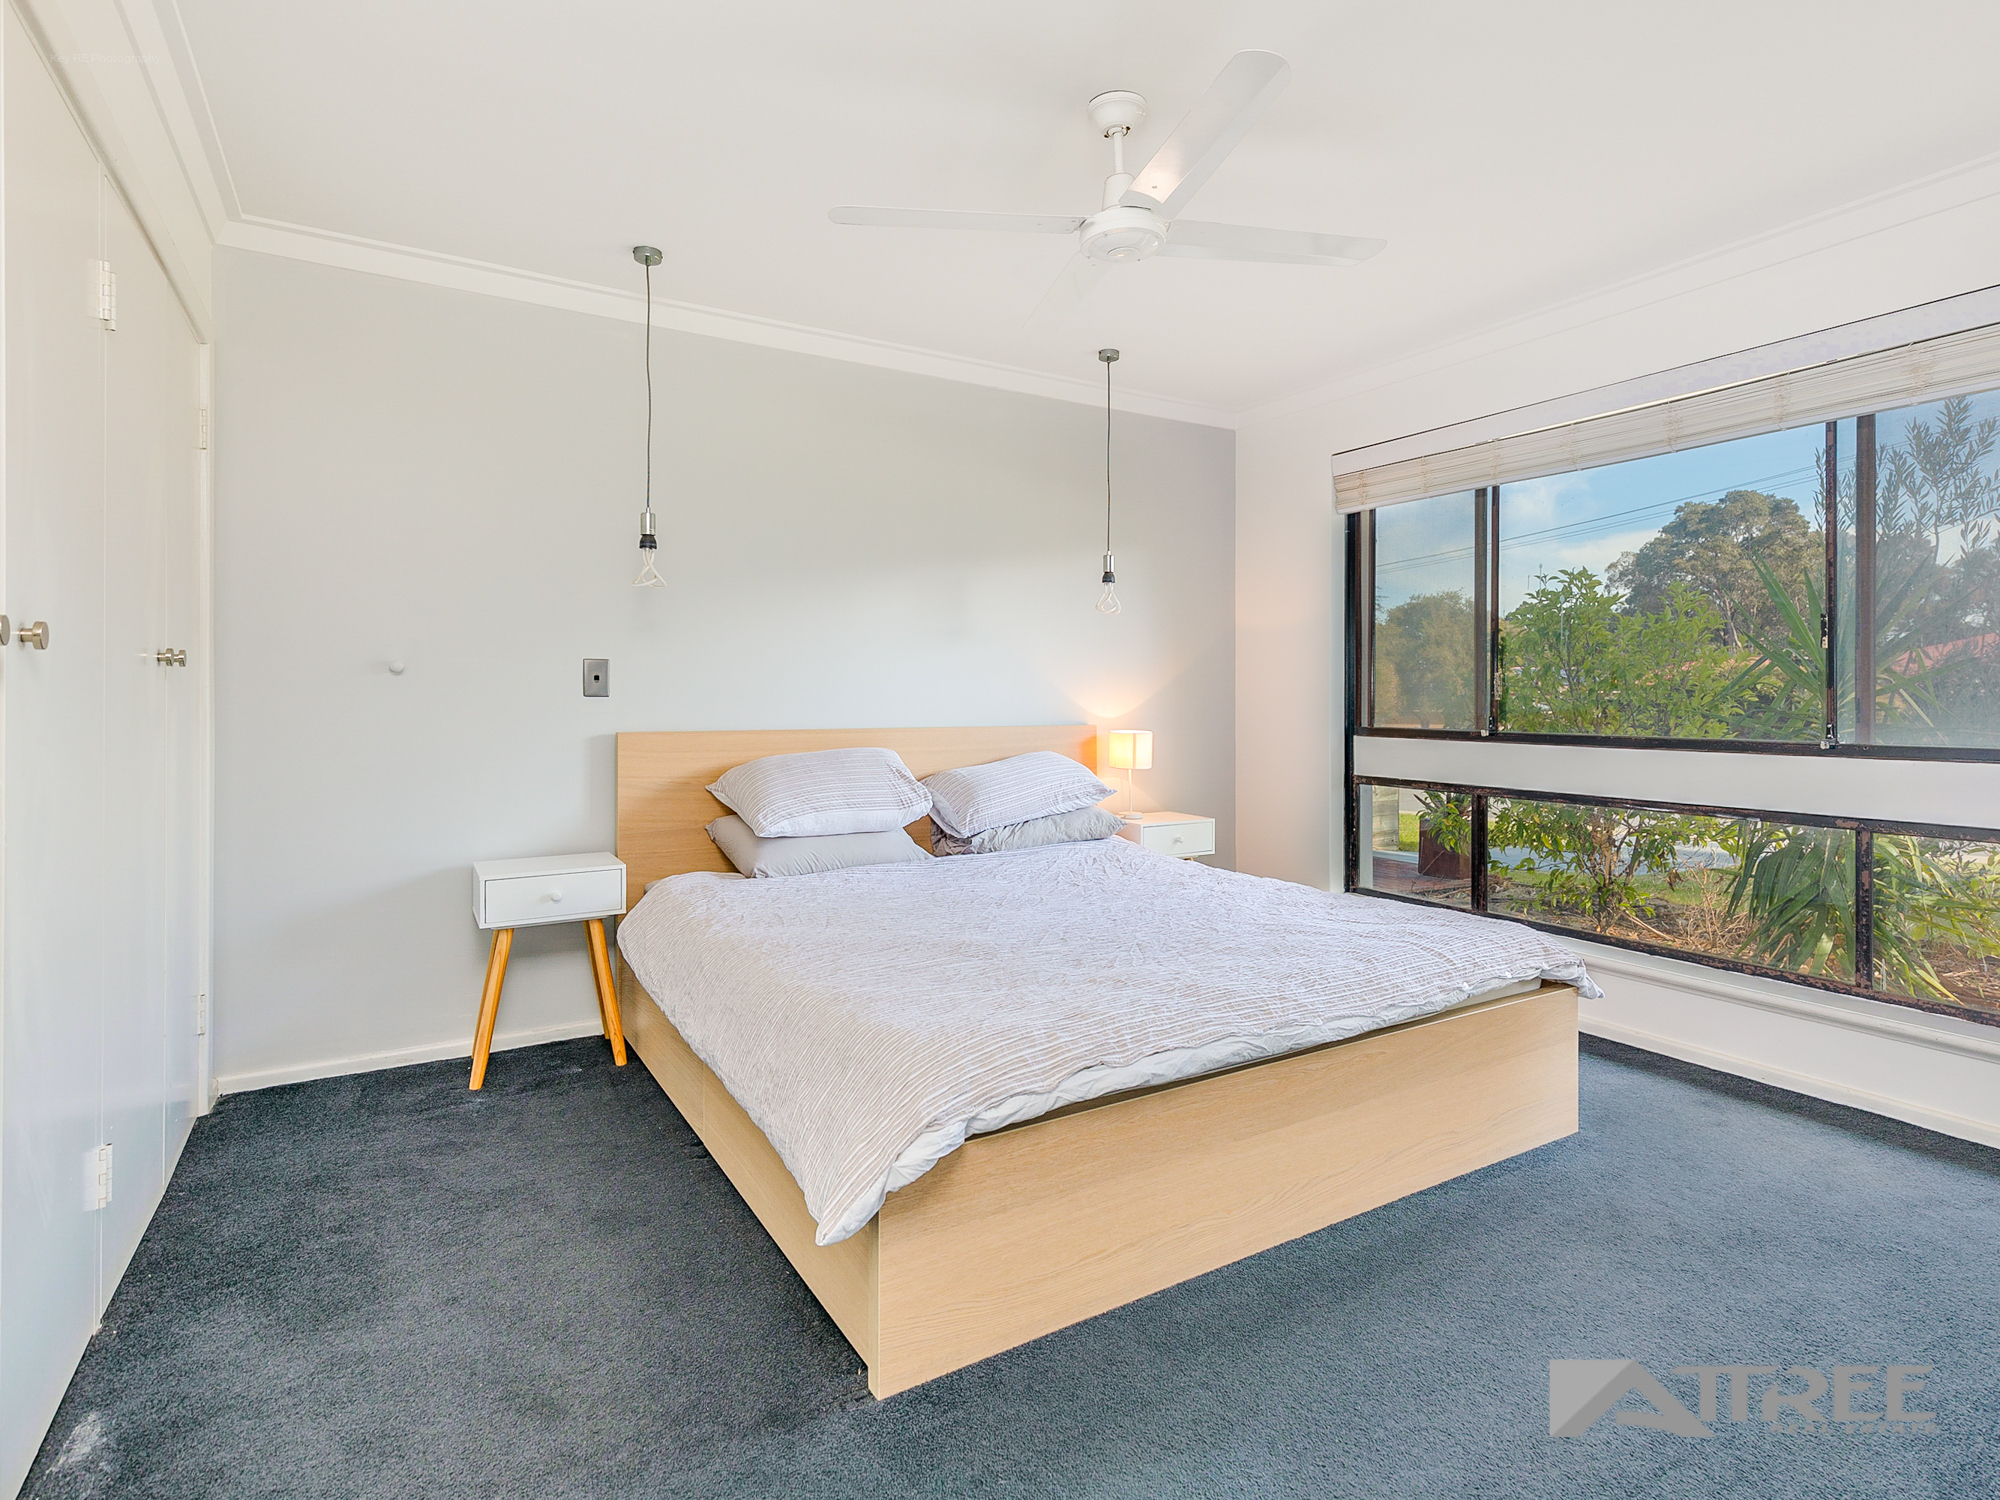 Property for sale in LESMURDIE, 26 Hunter Drive : Attree Real Estate